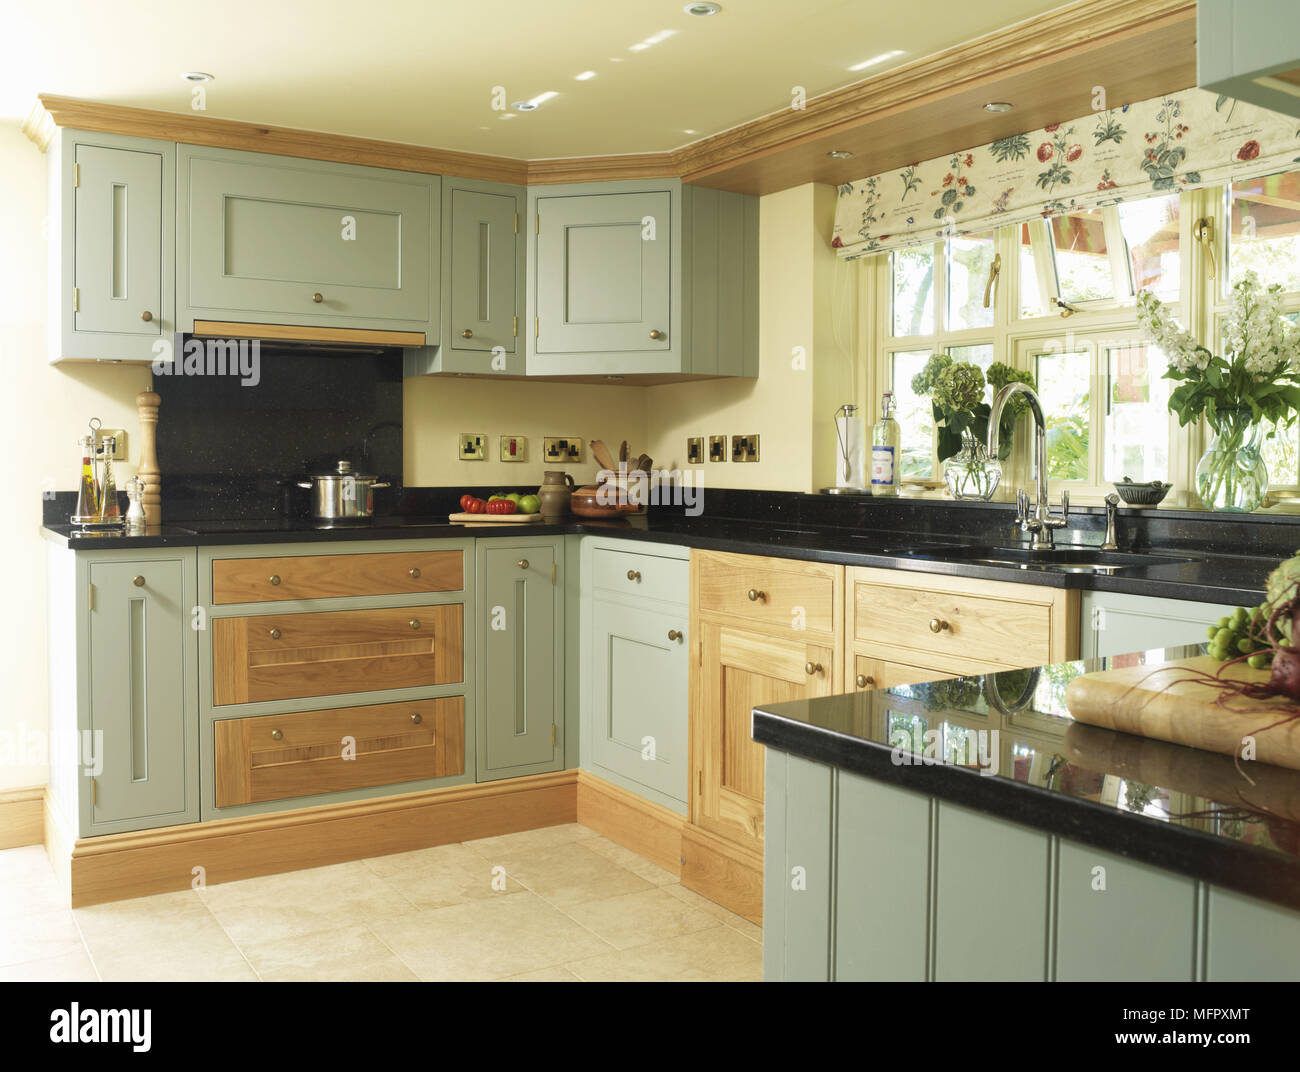 Country style kitchen with green fitted units